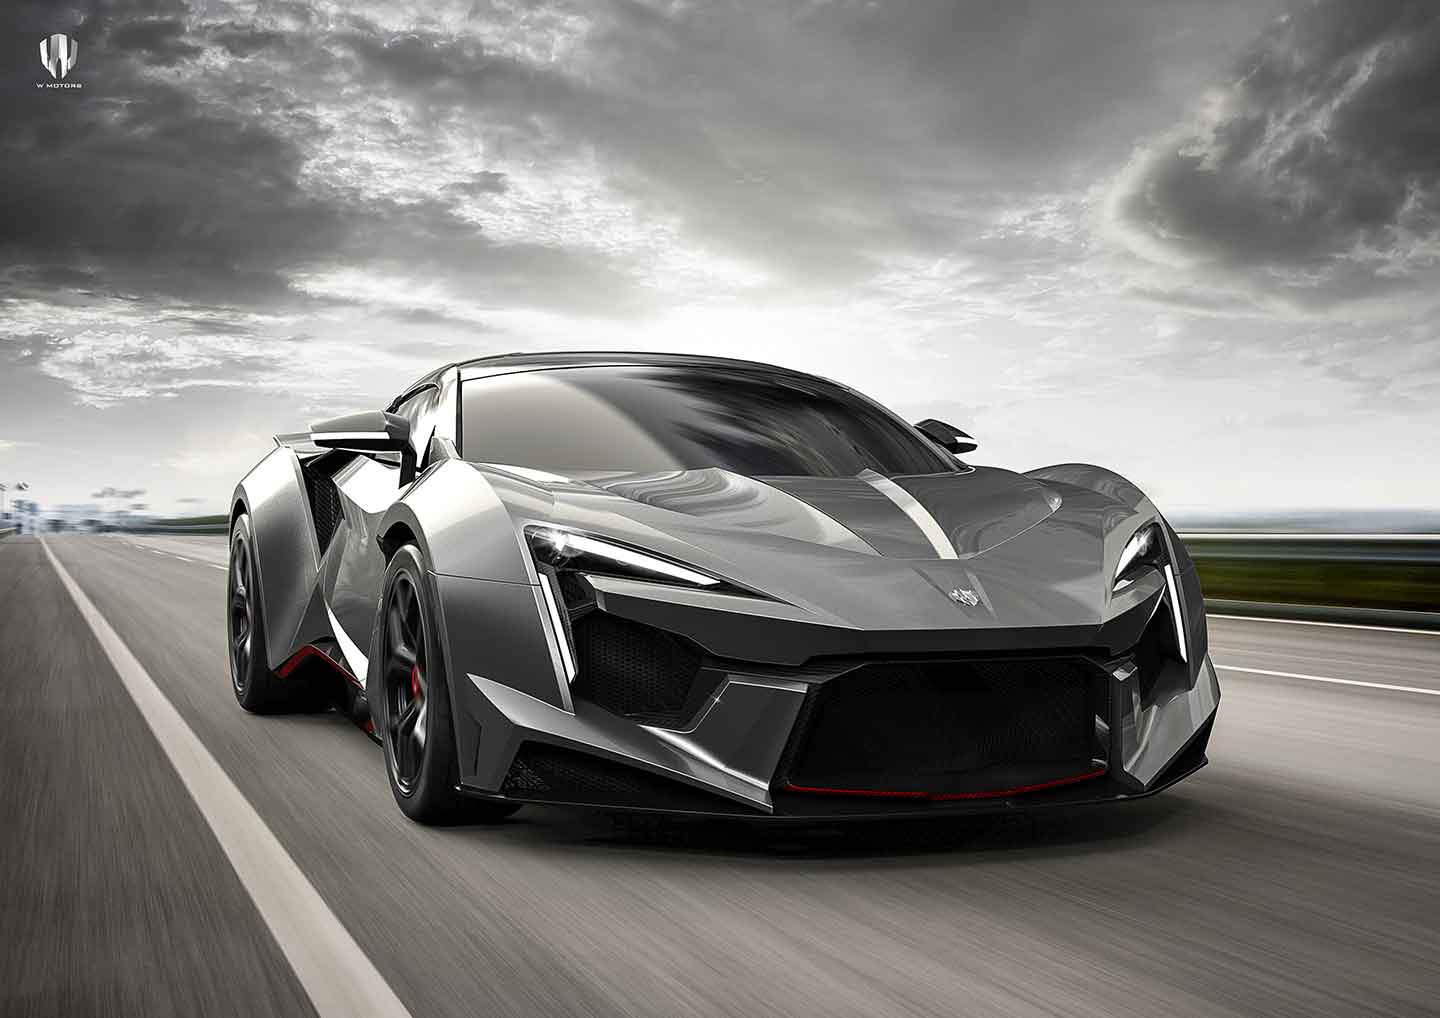 2016 W Motors Fenyr SuperSport Review   Top Speed. »